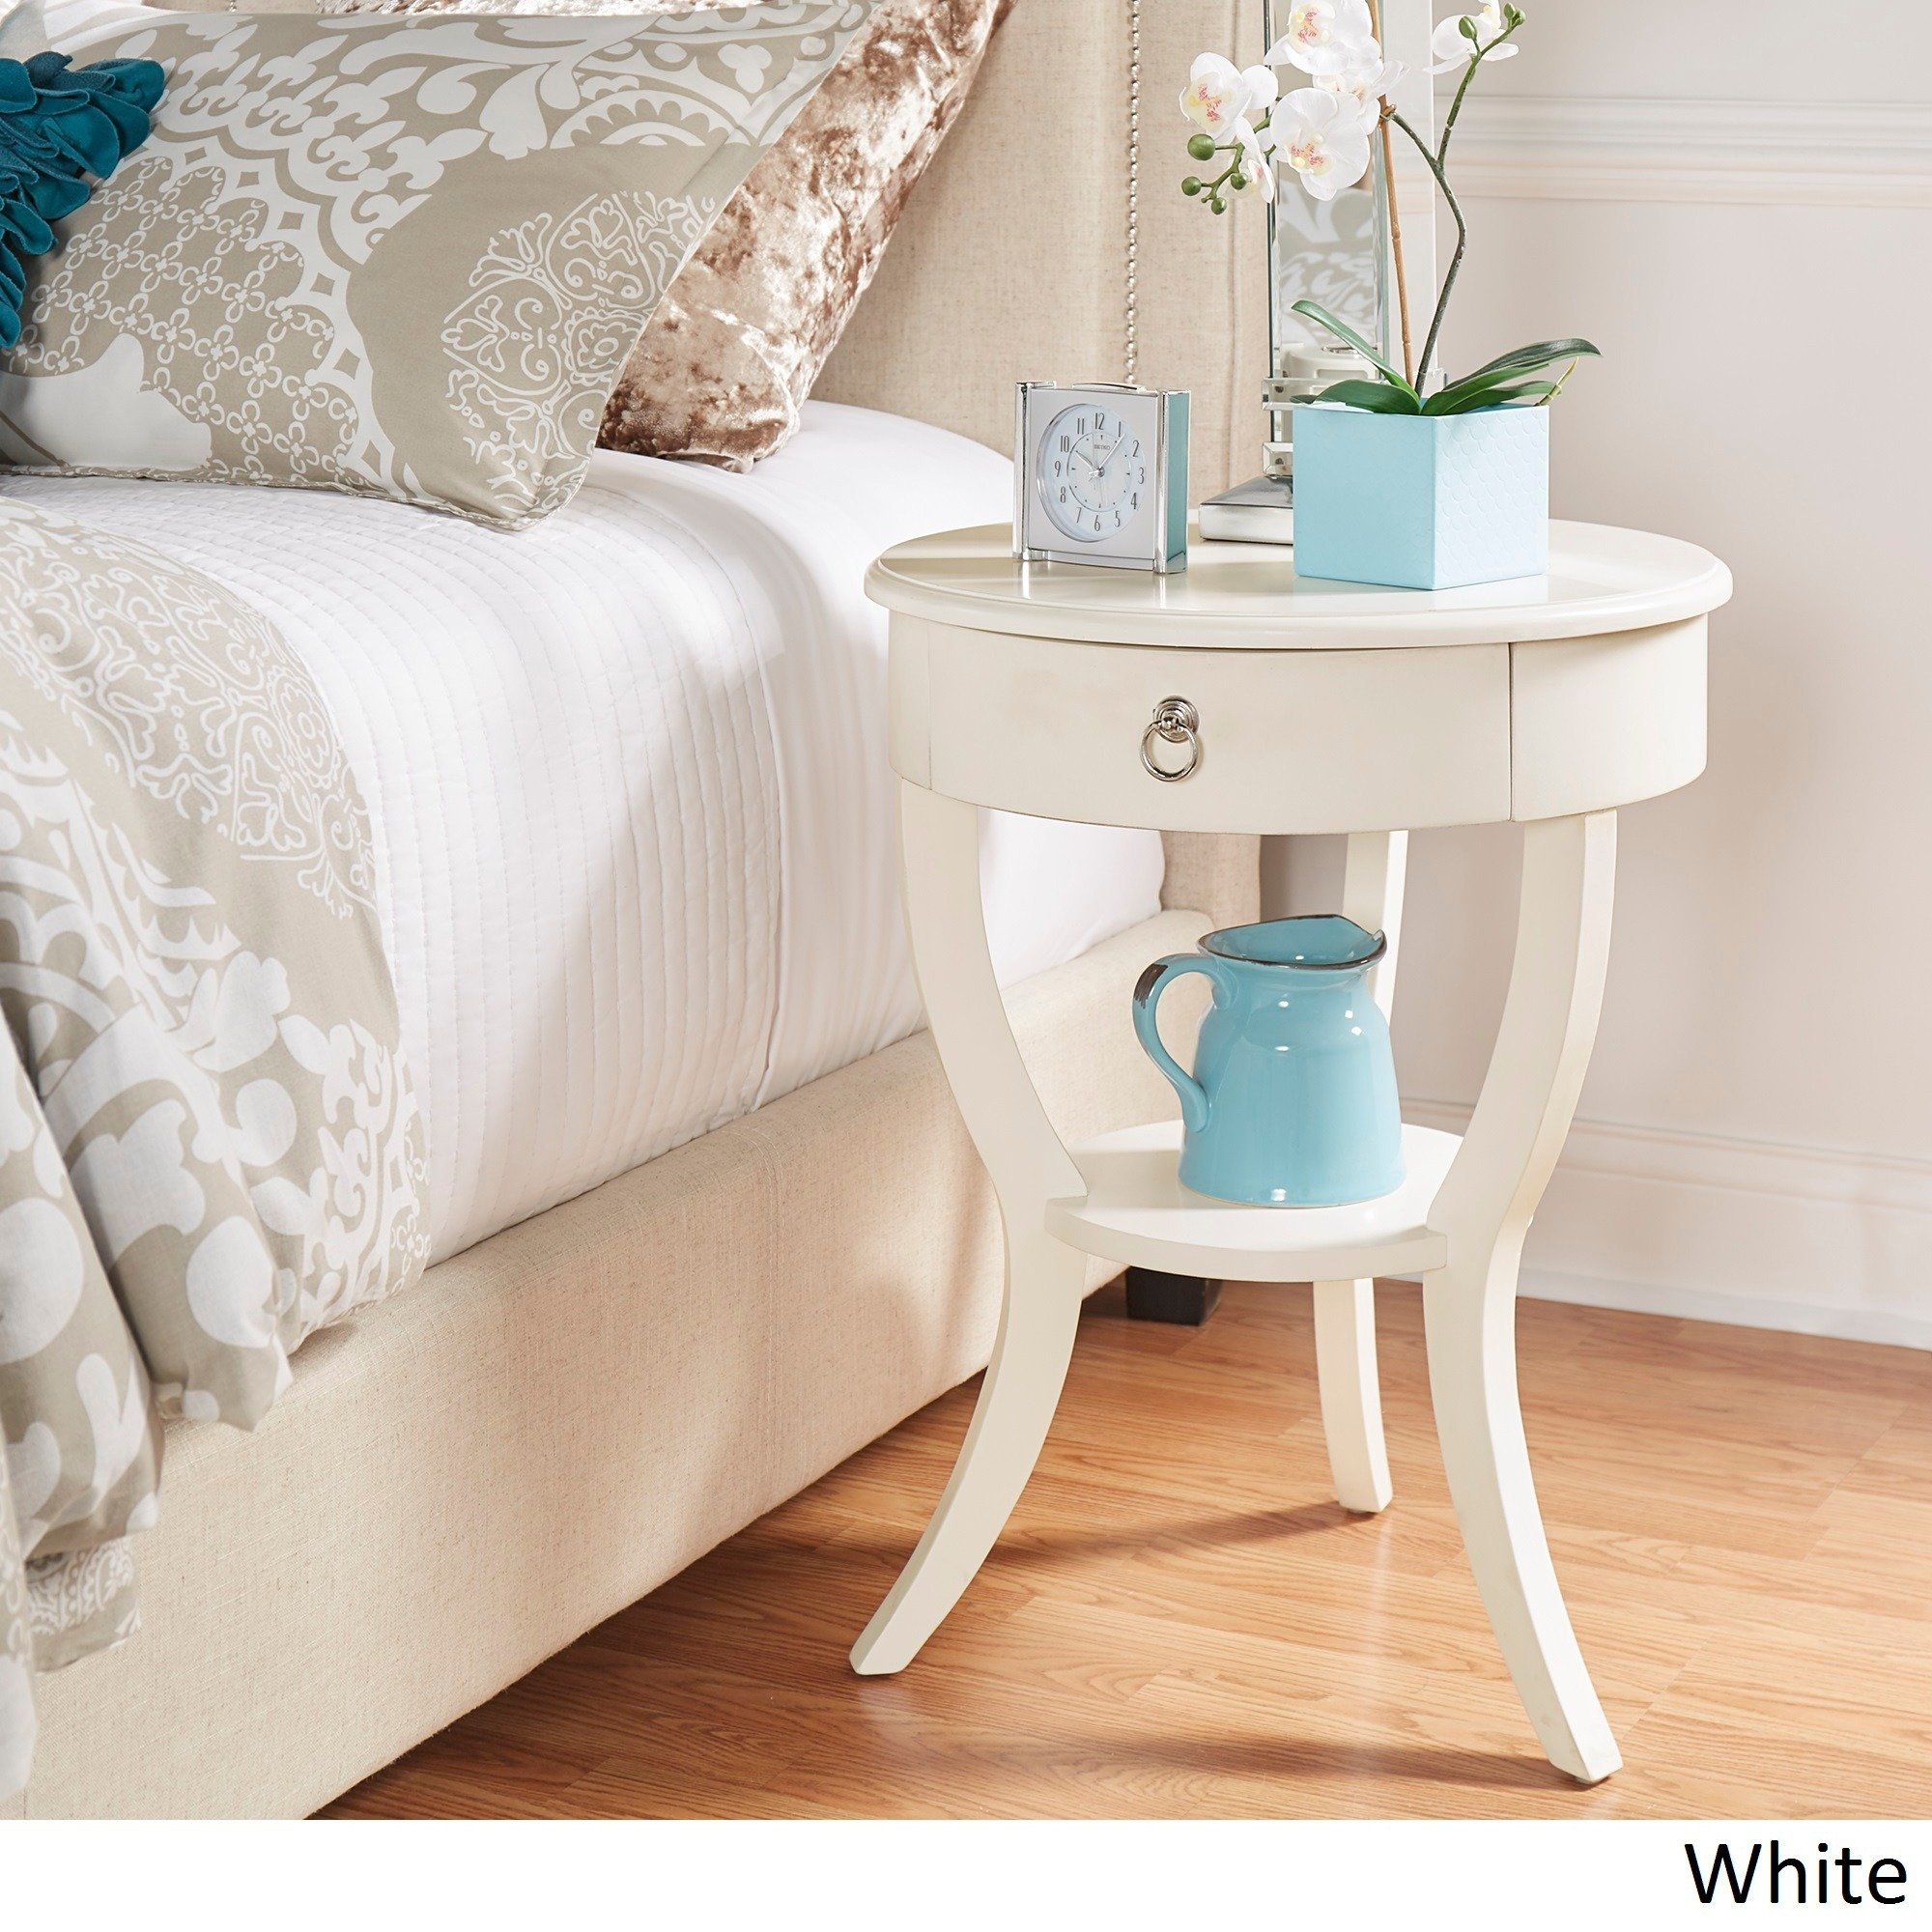 burkhardt tripod round wood accent table inspire bold room essentials mixed material free shipping today coffee tray ideas tiffany shades couch tables target convertible dining